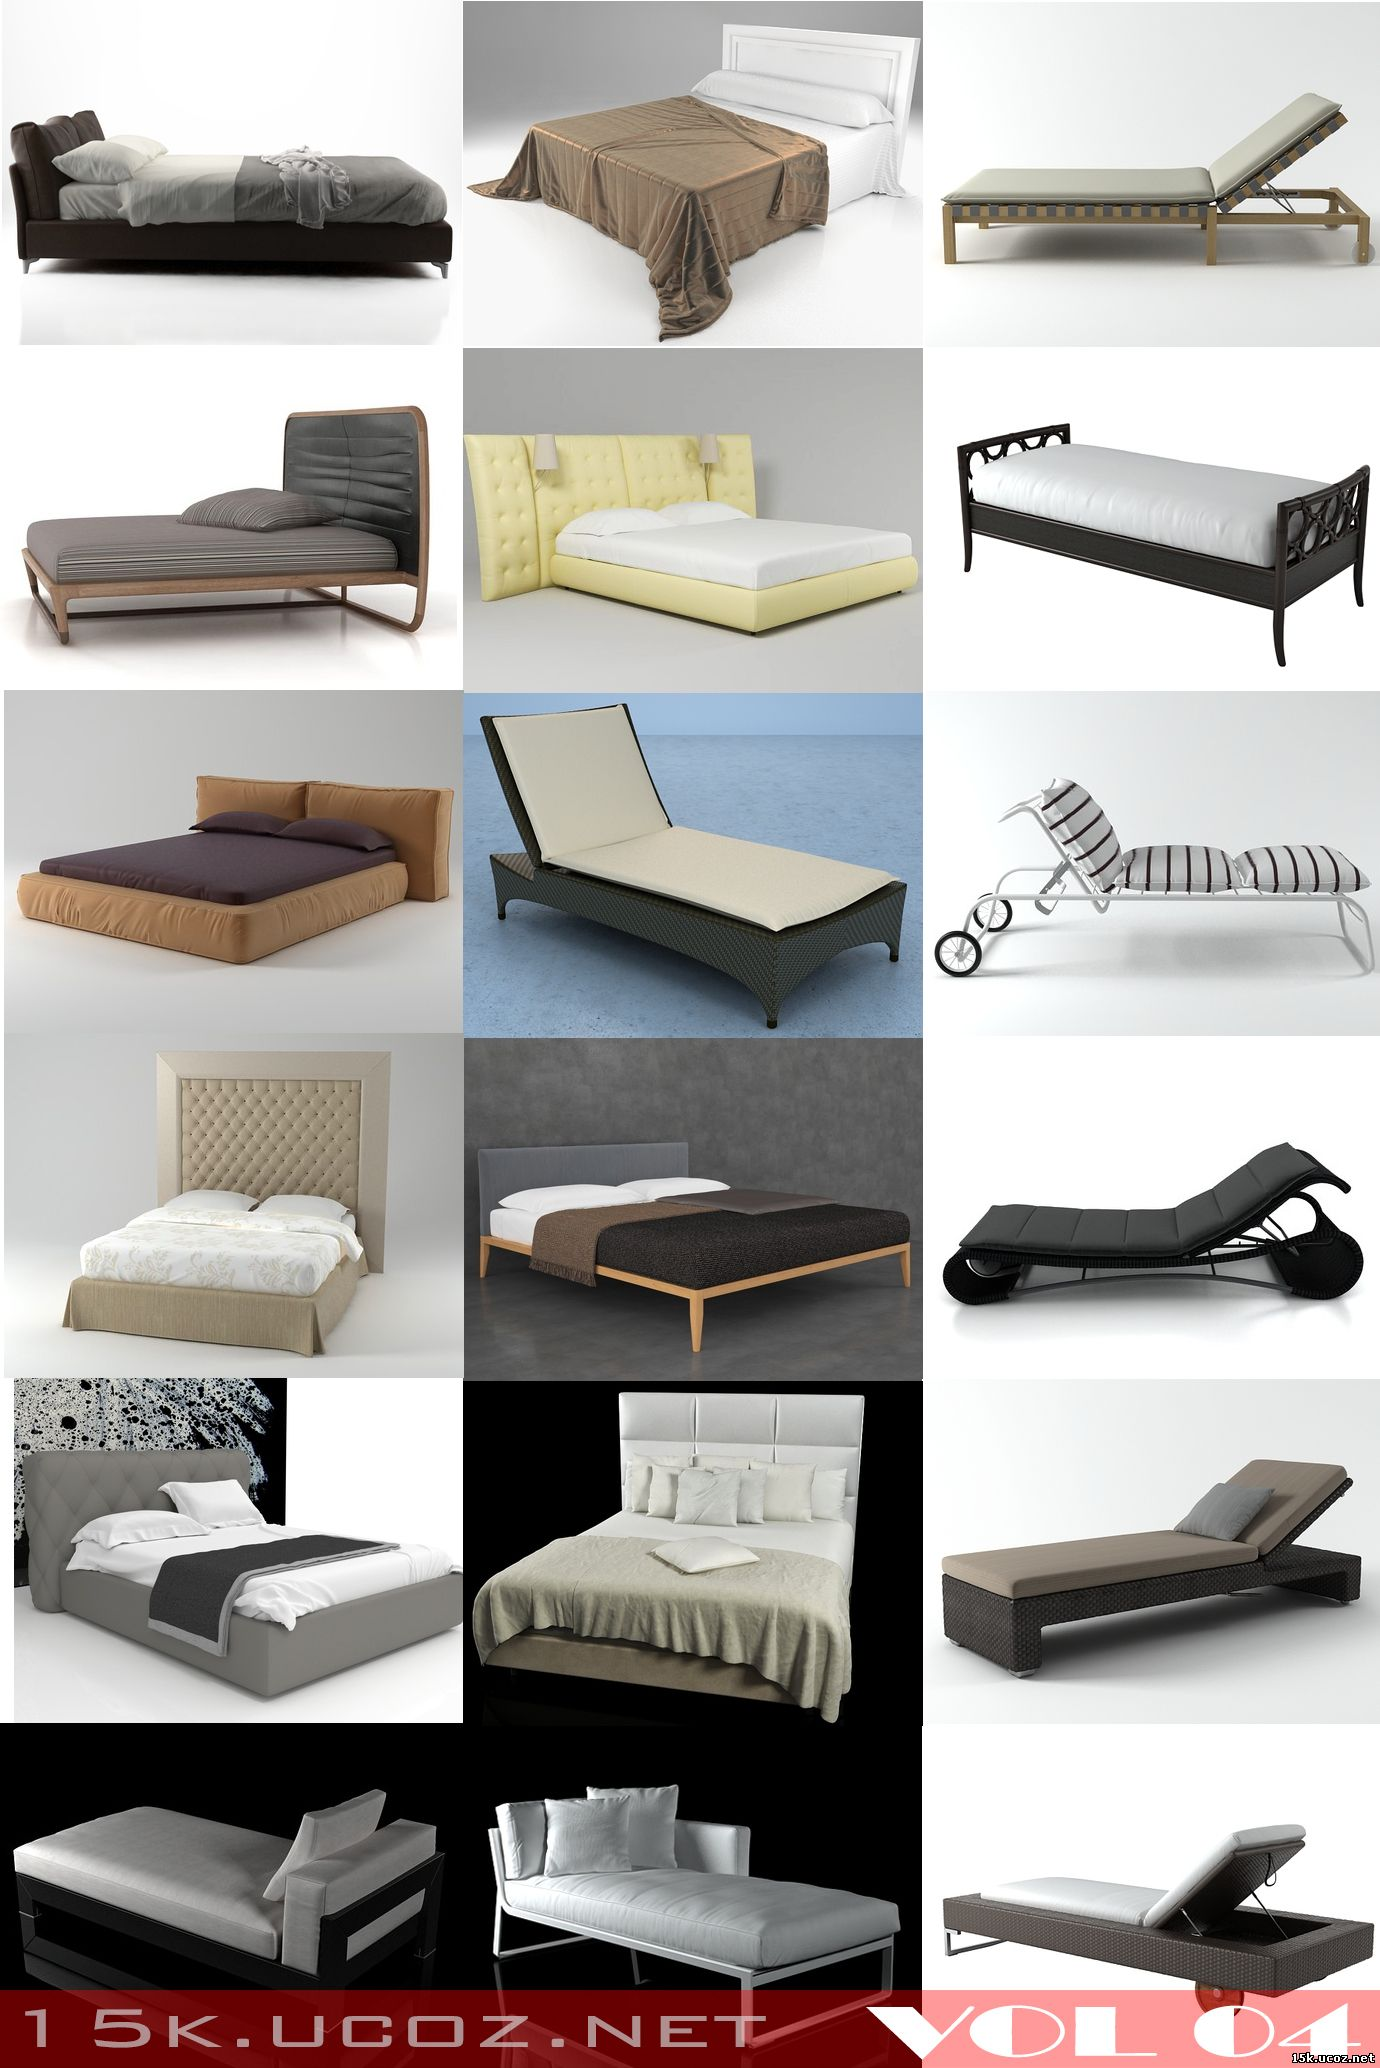 Modern design style bed model 3ds max beautiful bed 3ds for 3ds max bed model